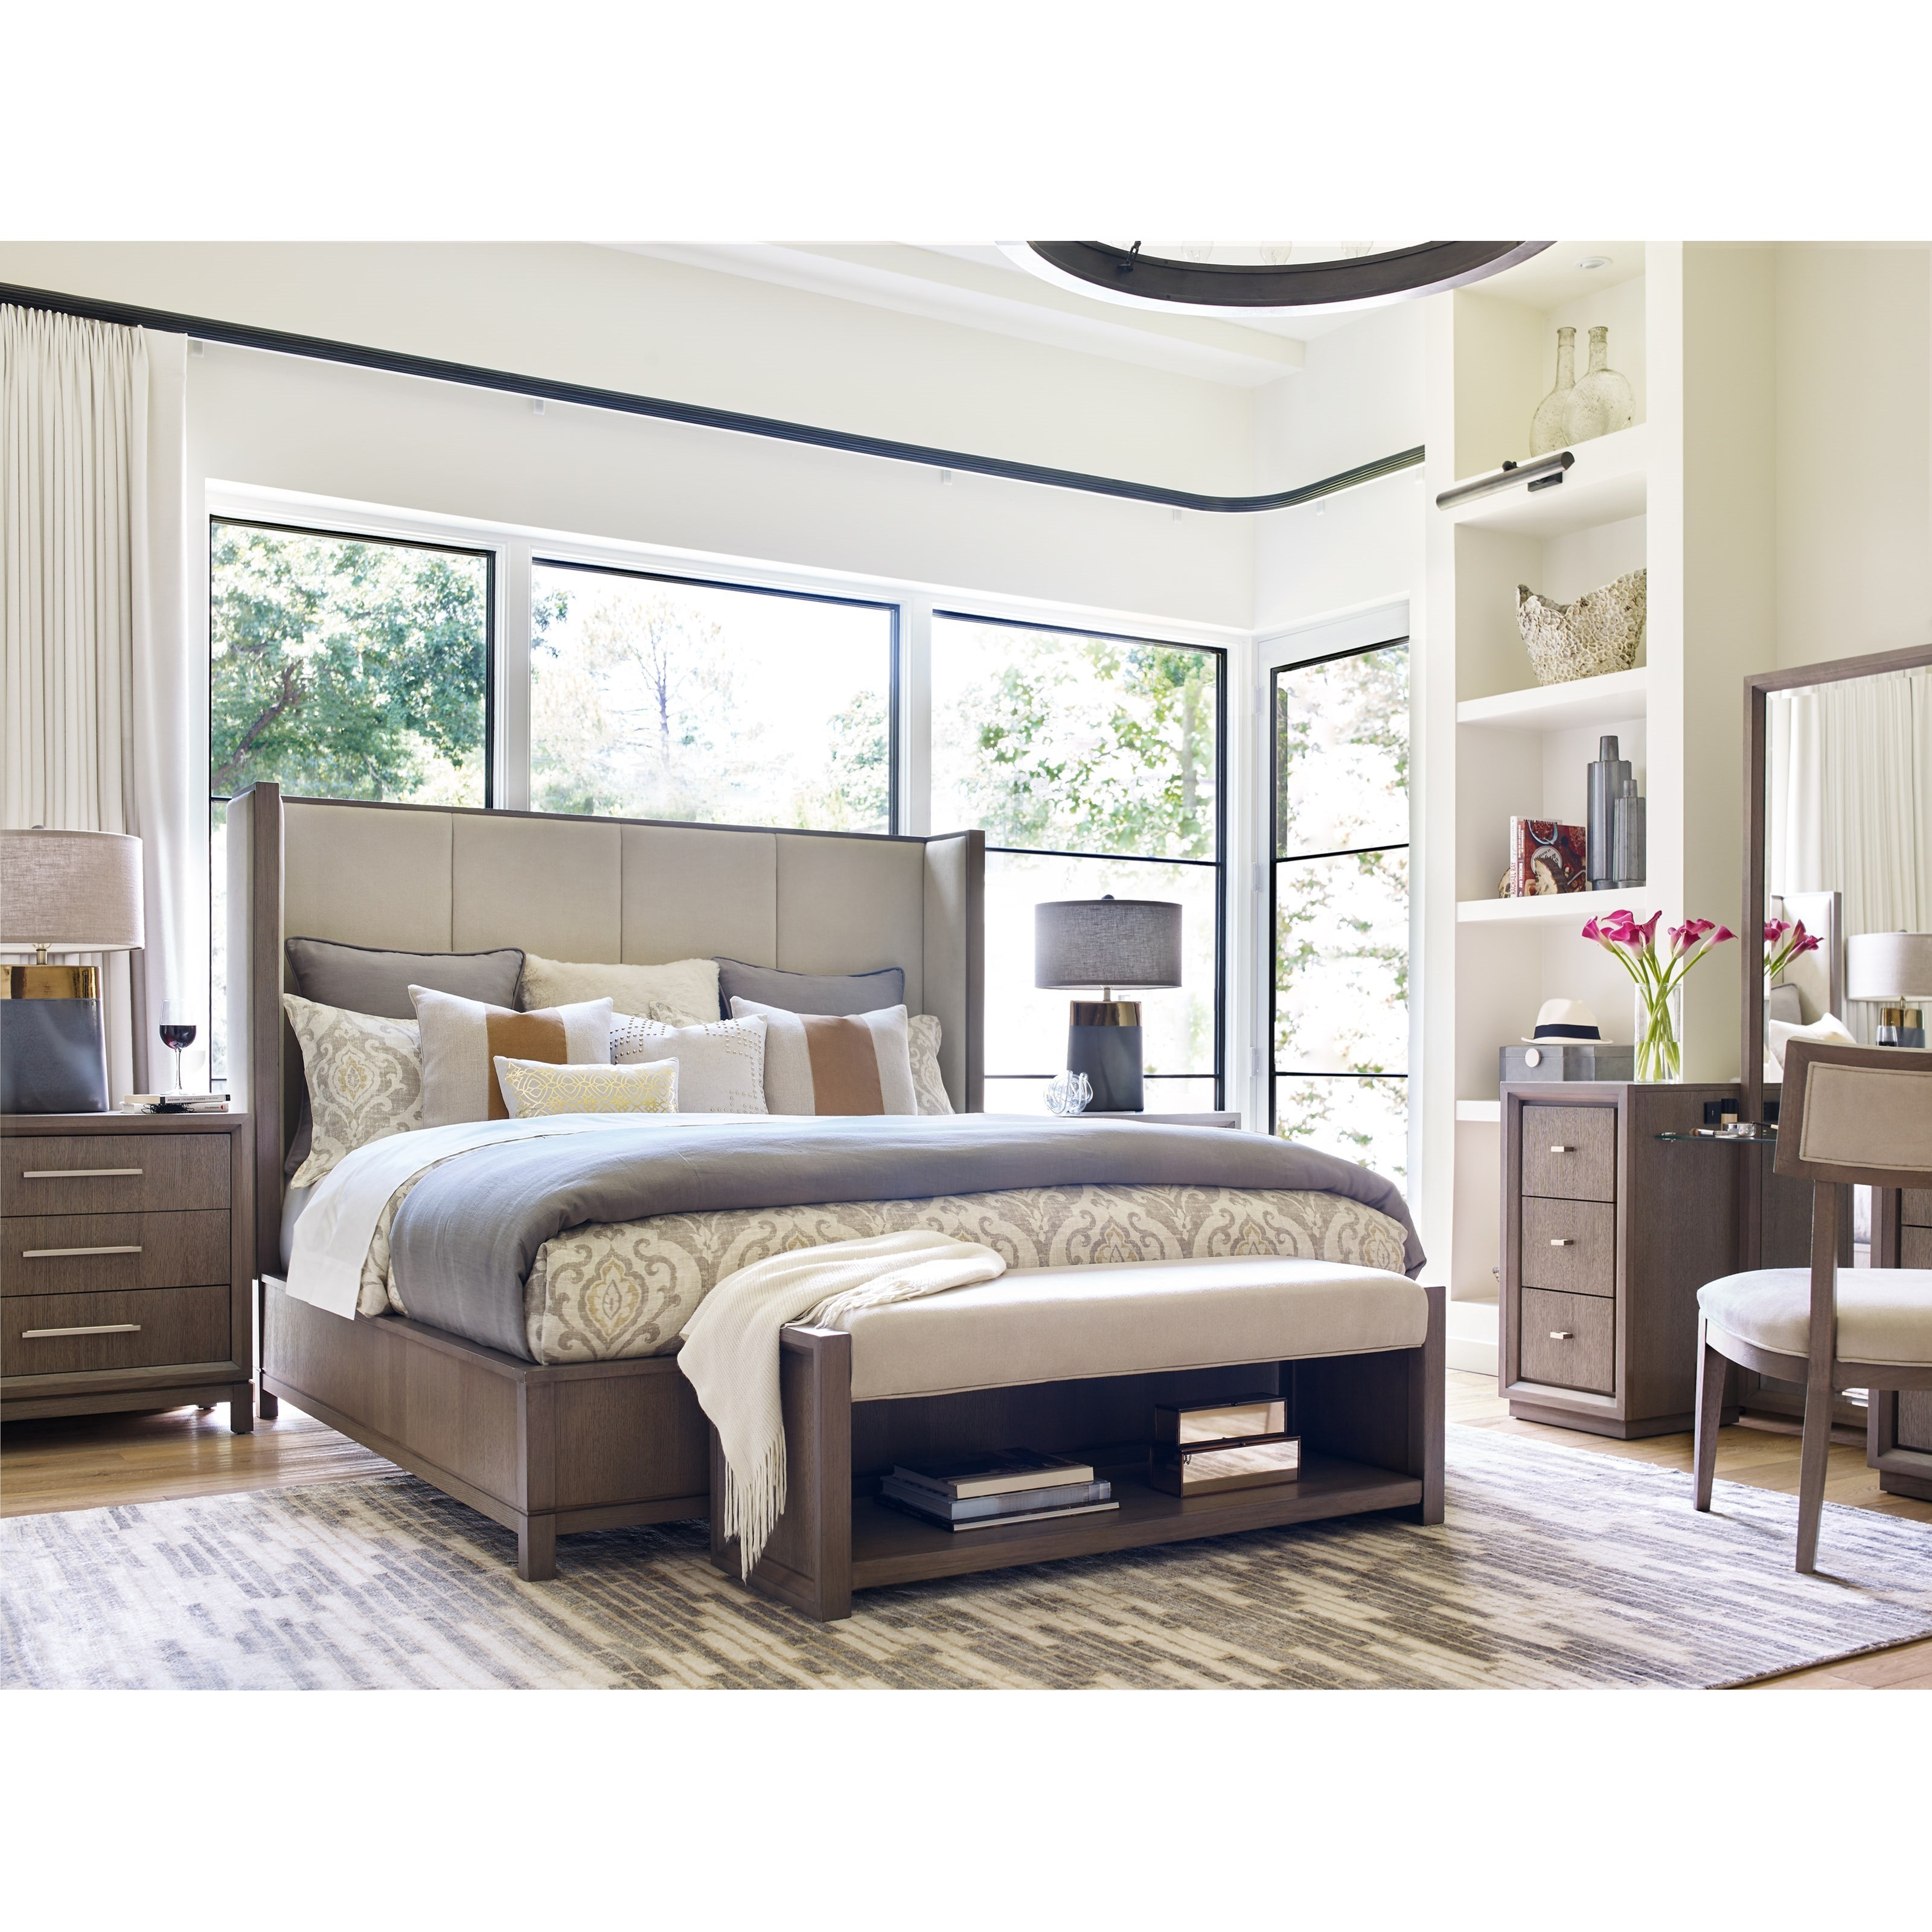 Rachael Ray Home By Legacy Classic High Line King Upholstered Shelter Bed Fashion Furniture